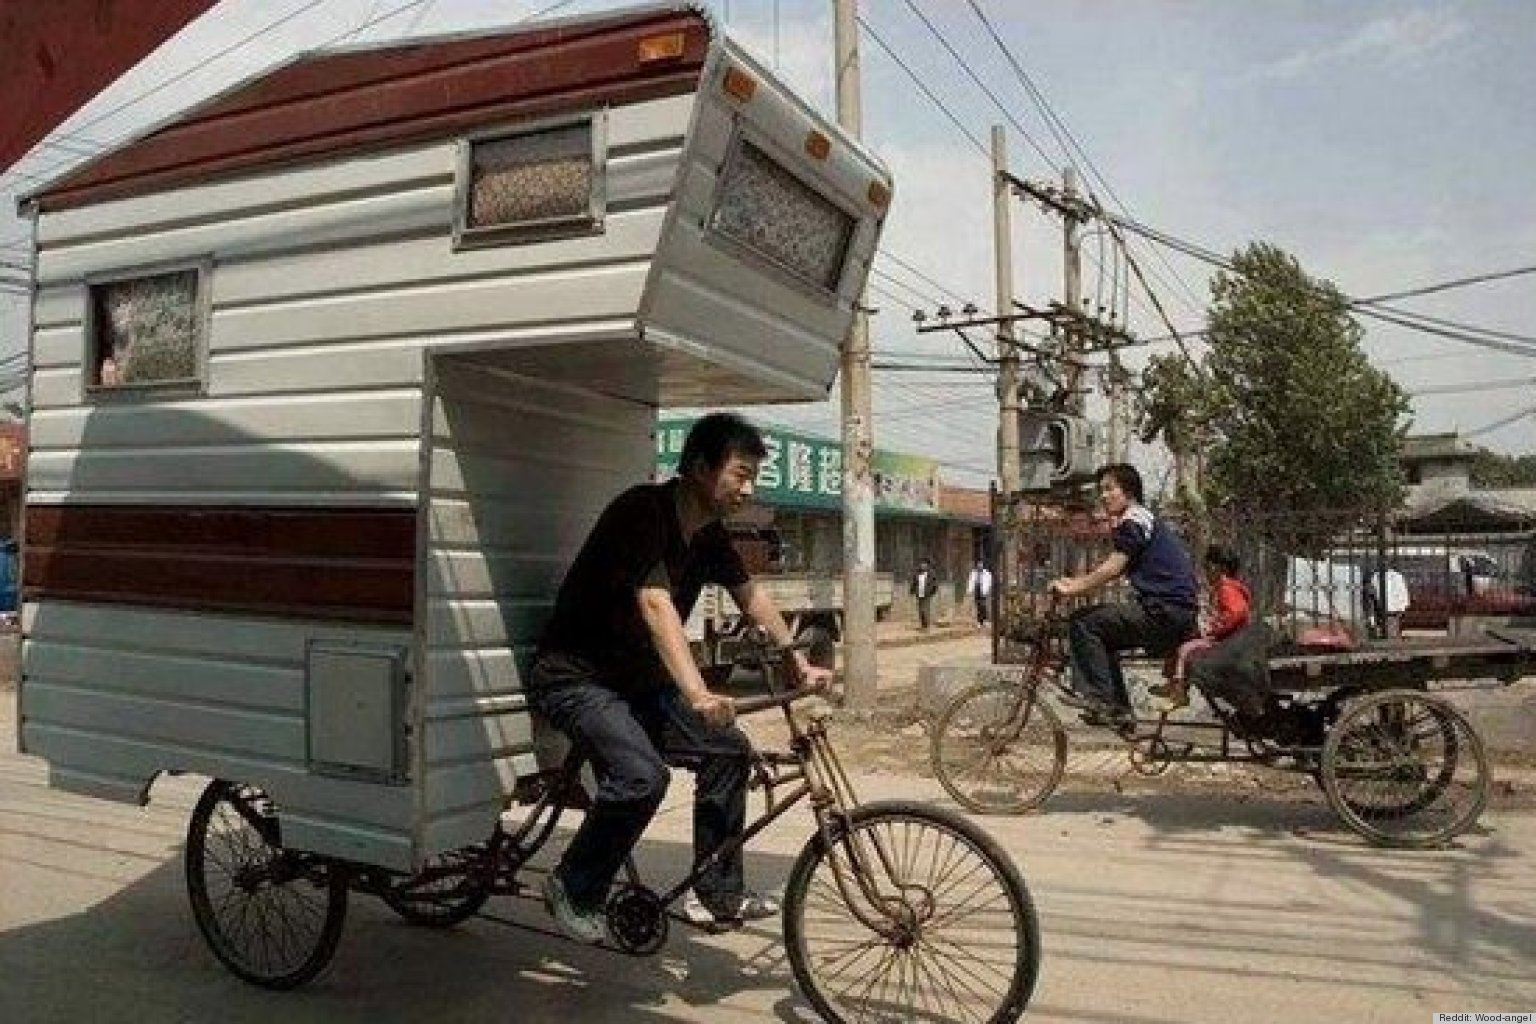 Bike Camper Trailer Tiny Trailer Pulled By Bicycle Rider May Really Be The Smallest